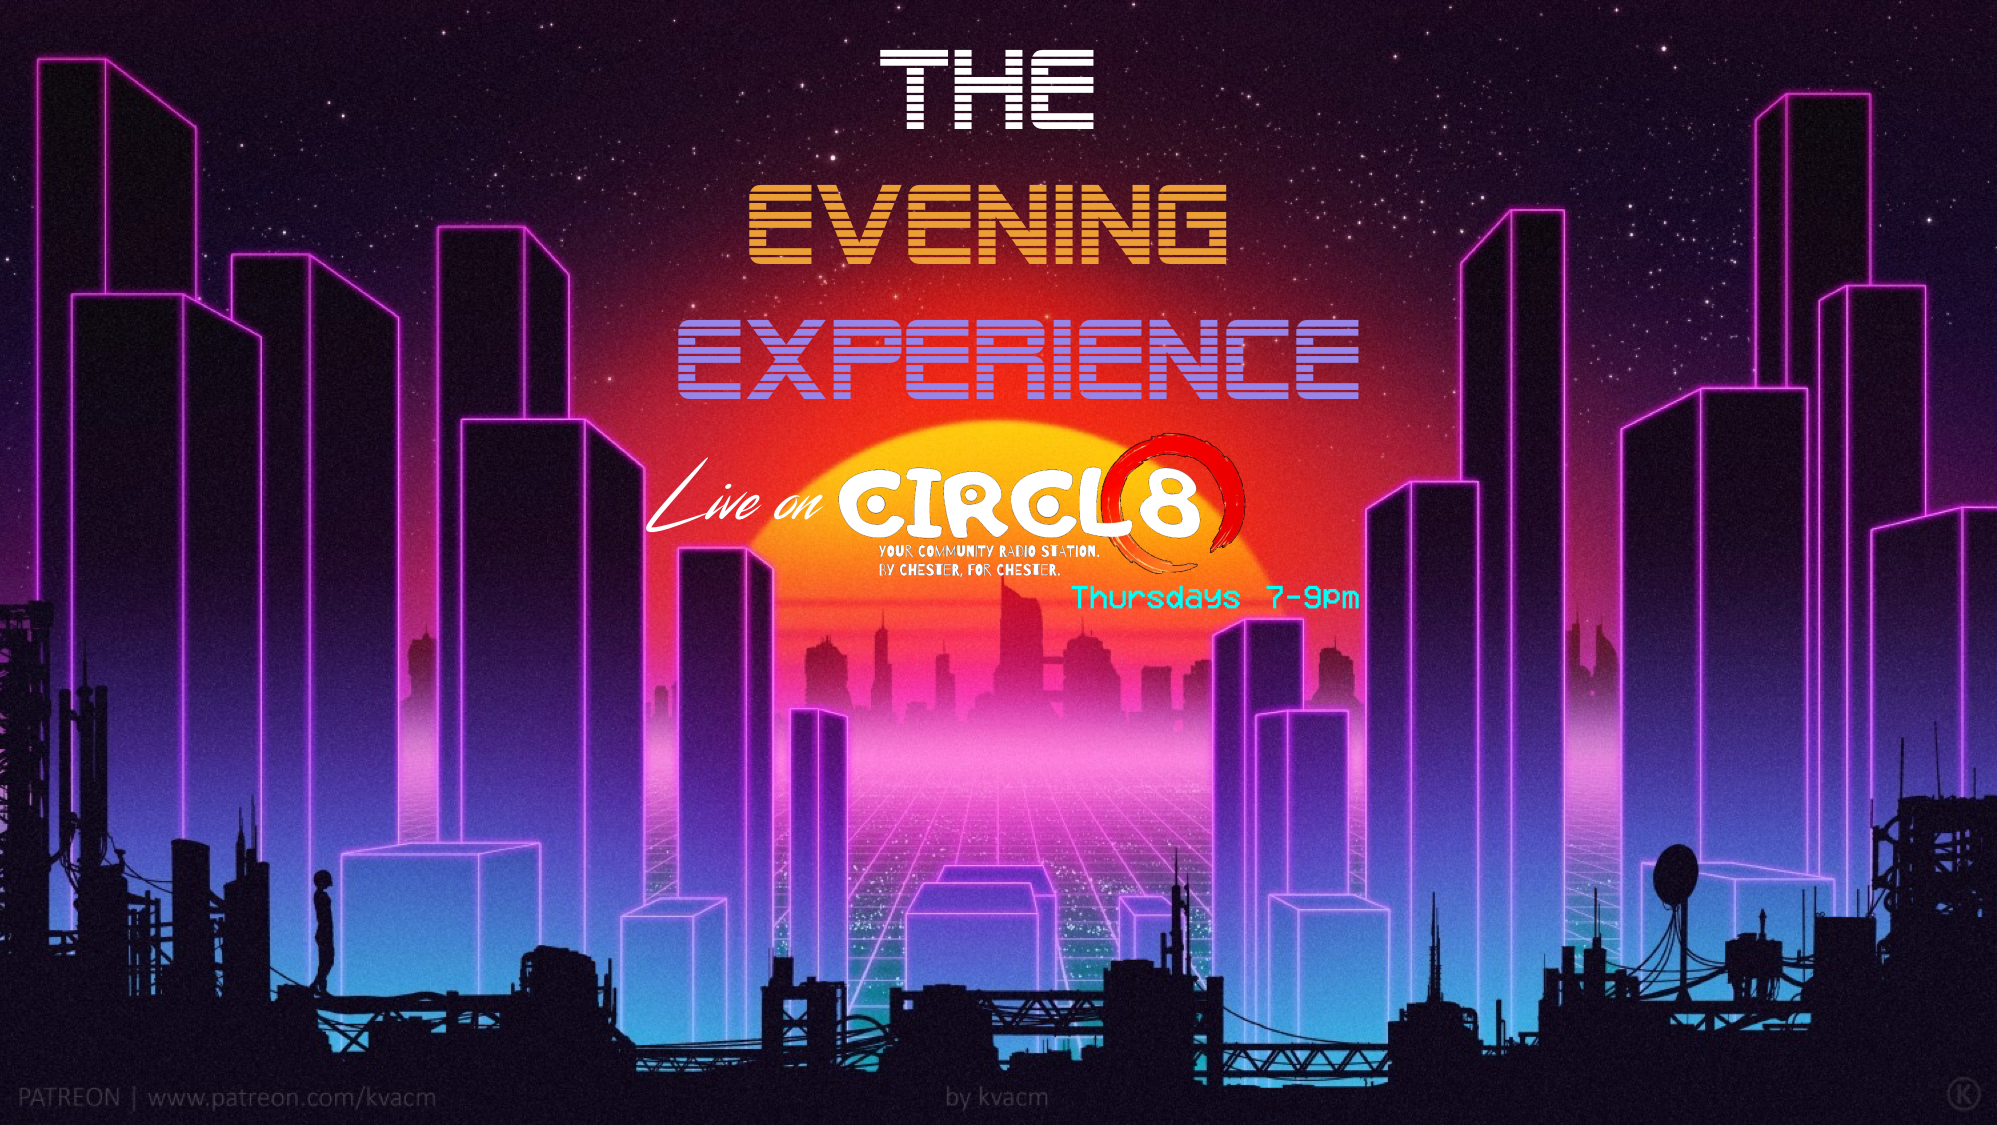 THE EVENING EXPERIENCE